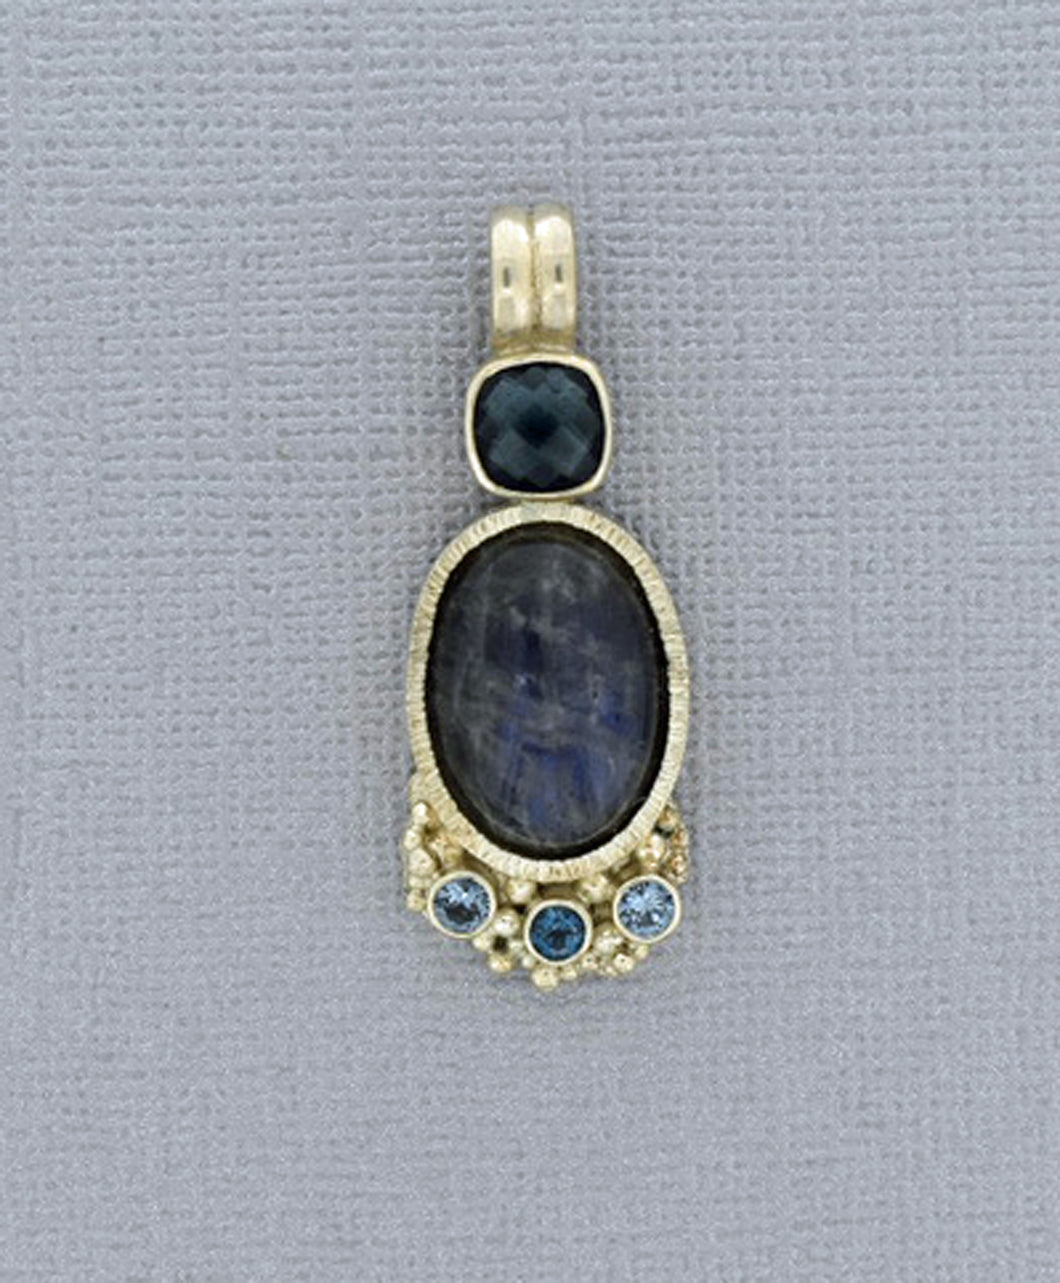 Labradorite Pendant with London Blue Topaz accents